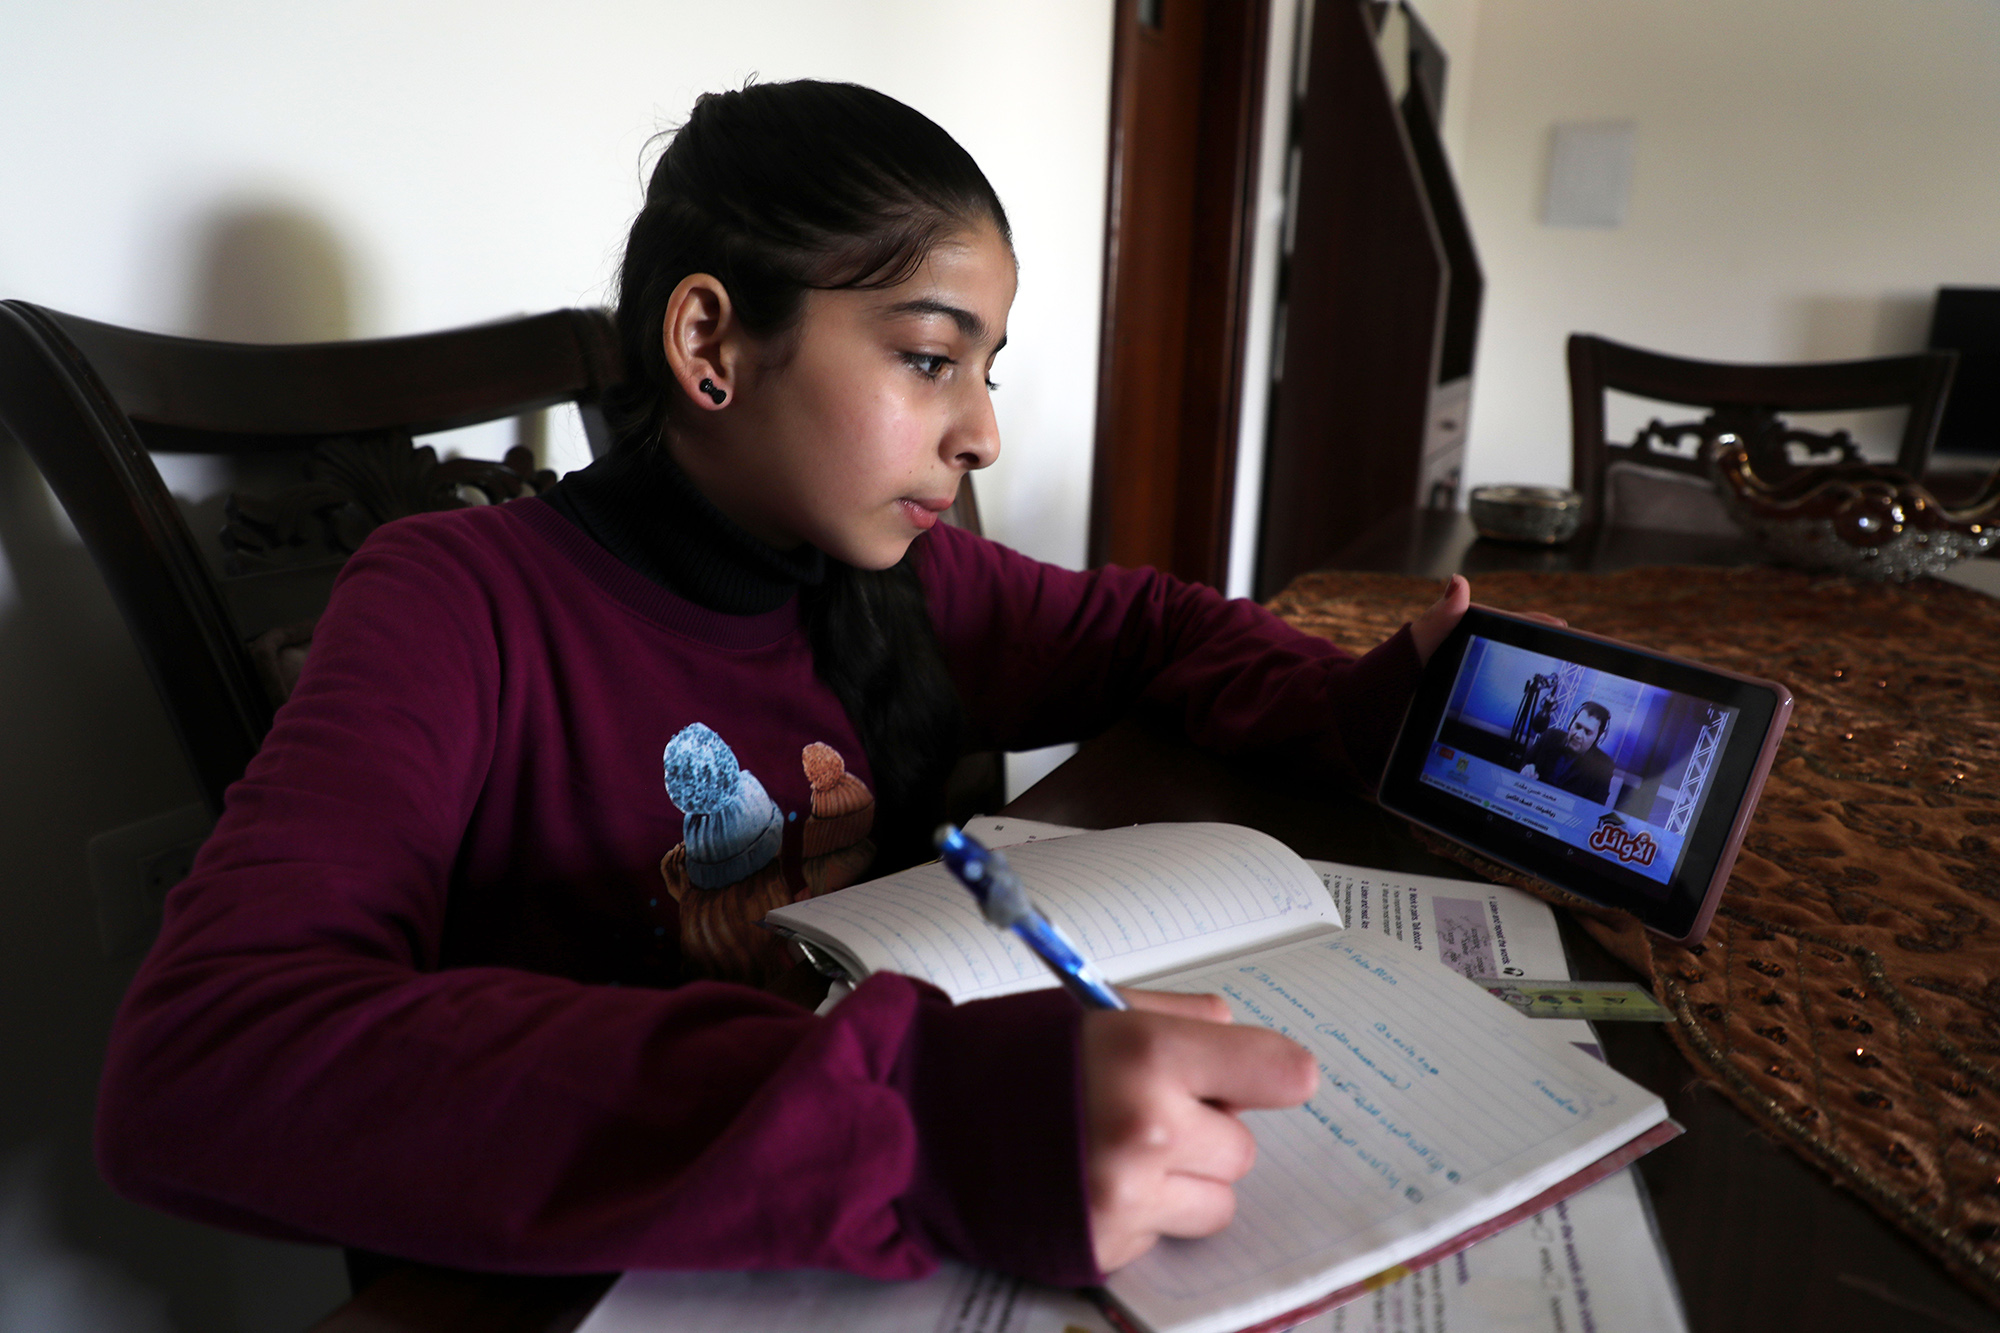 Palestinian student following up an electronic lesson on the Education radio, during school students vacation as a preventive measure amid fears of the spread of the novel coronavirus, in Gaza city, on March 15, 2020. (Photo by Majdi Fathi/NurPhoto via Getty Images)